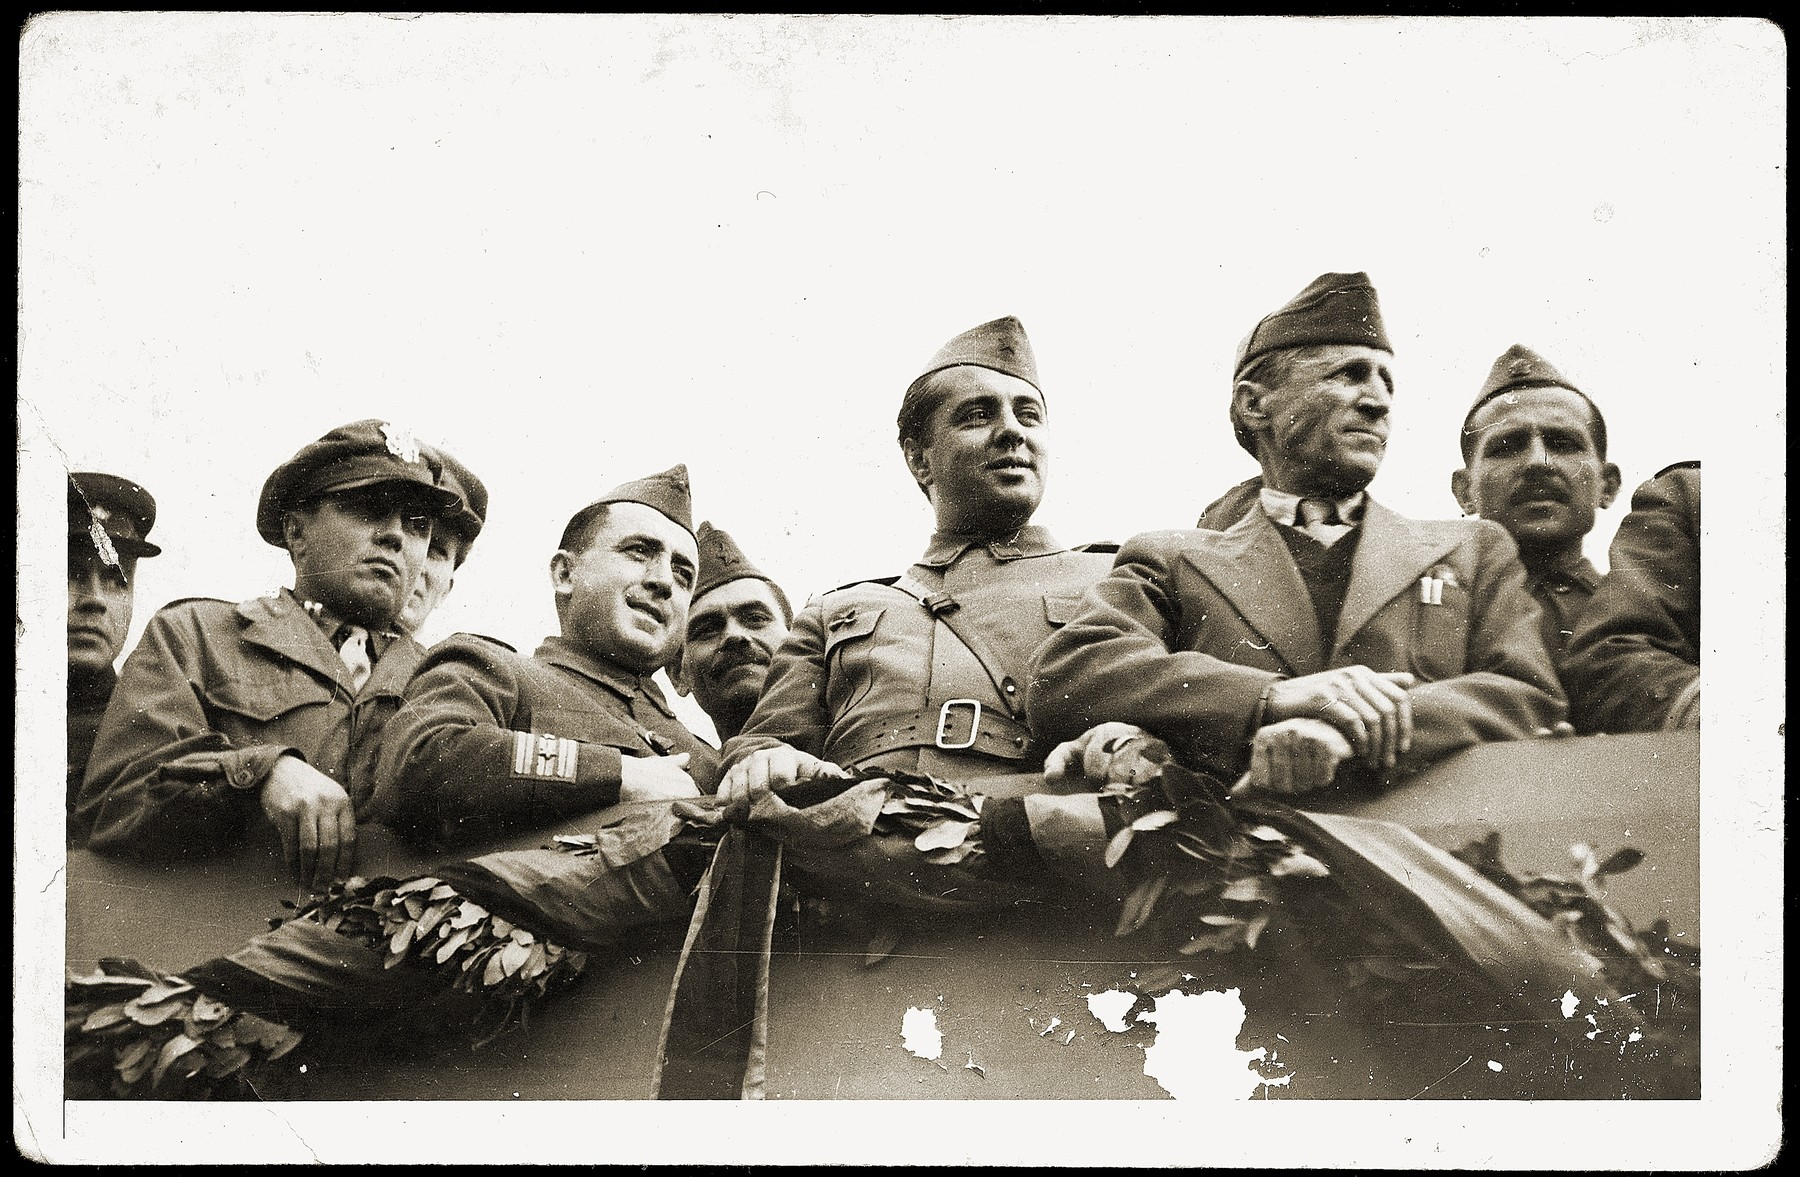 Albanian communist leader, Enver Hoxha (center), reviews the troops at a military parade marking the liberation of Tirana.